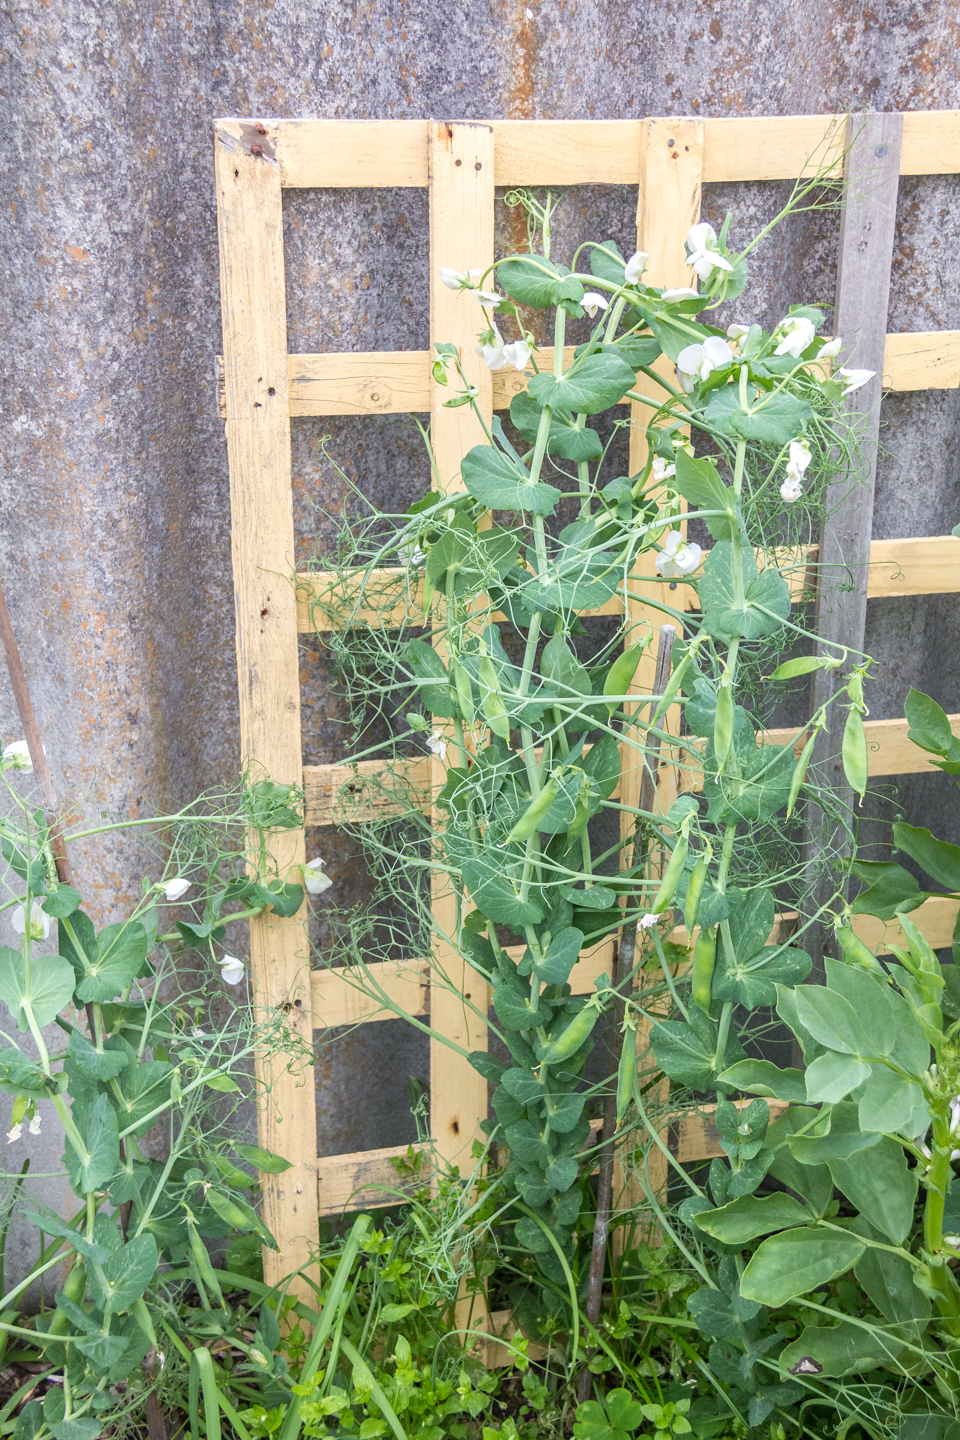 13/08/15 Day 108: Taller and producing peas